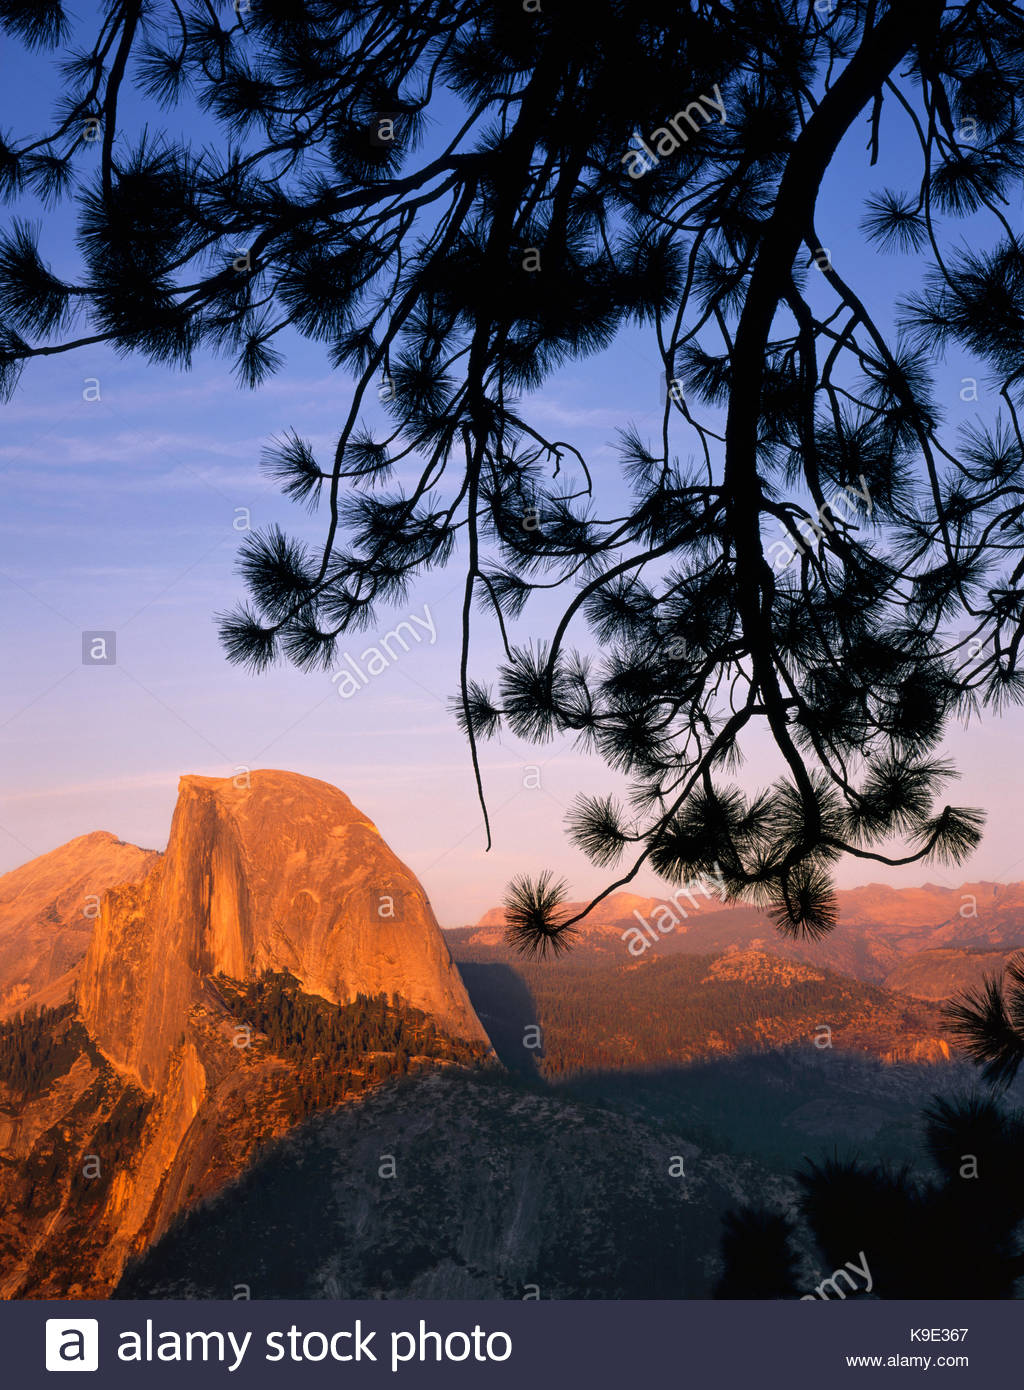 Half Dome and Jeffrey Pine from Glacier Point, Yosemite National Park, California - Stock Image